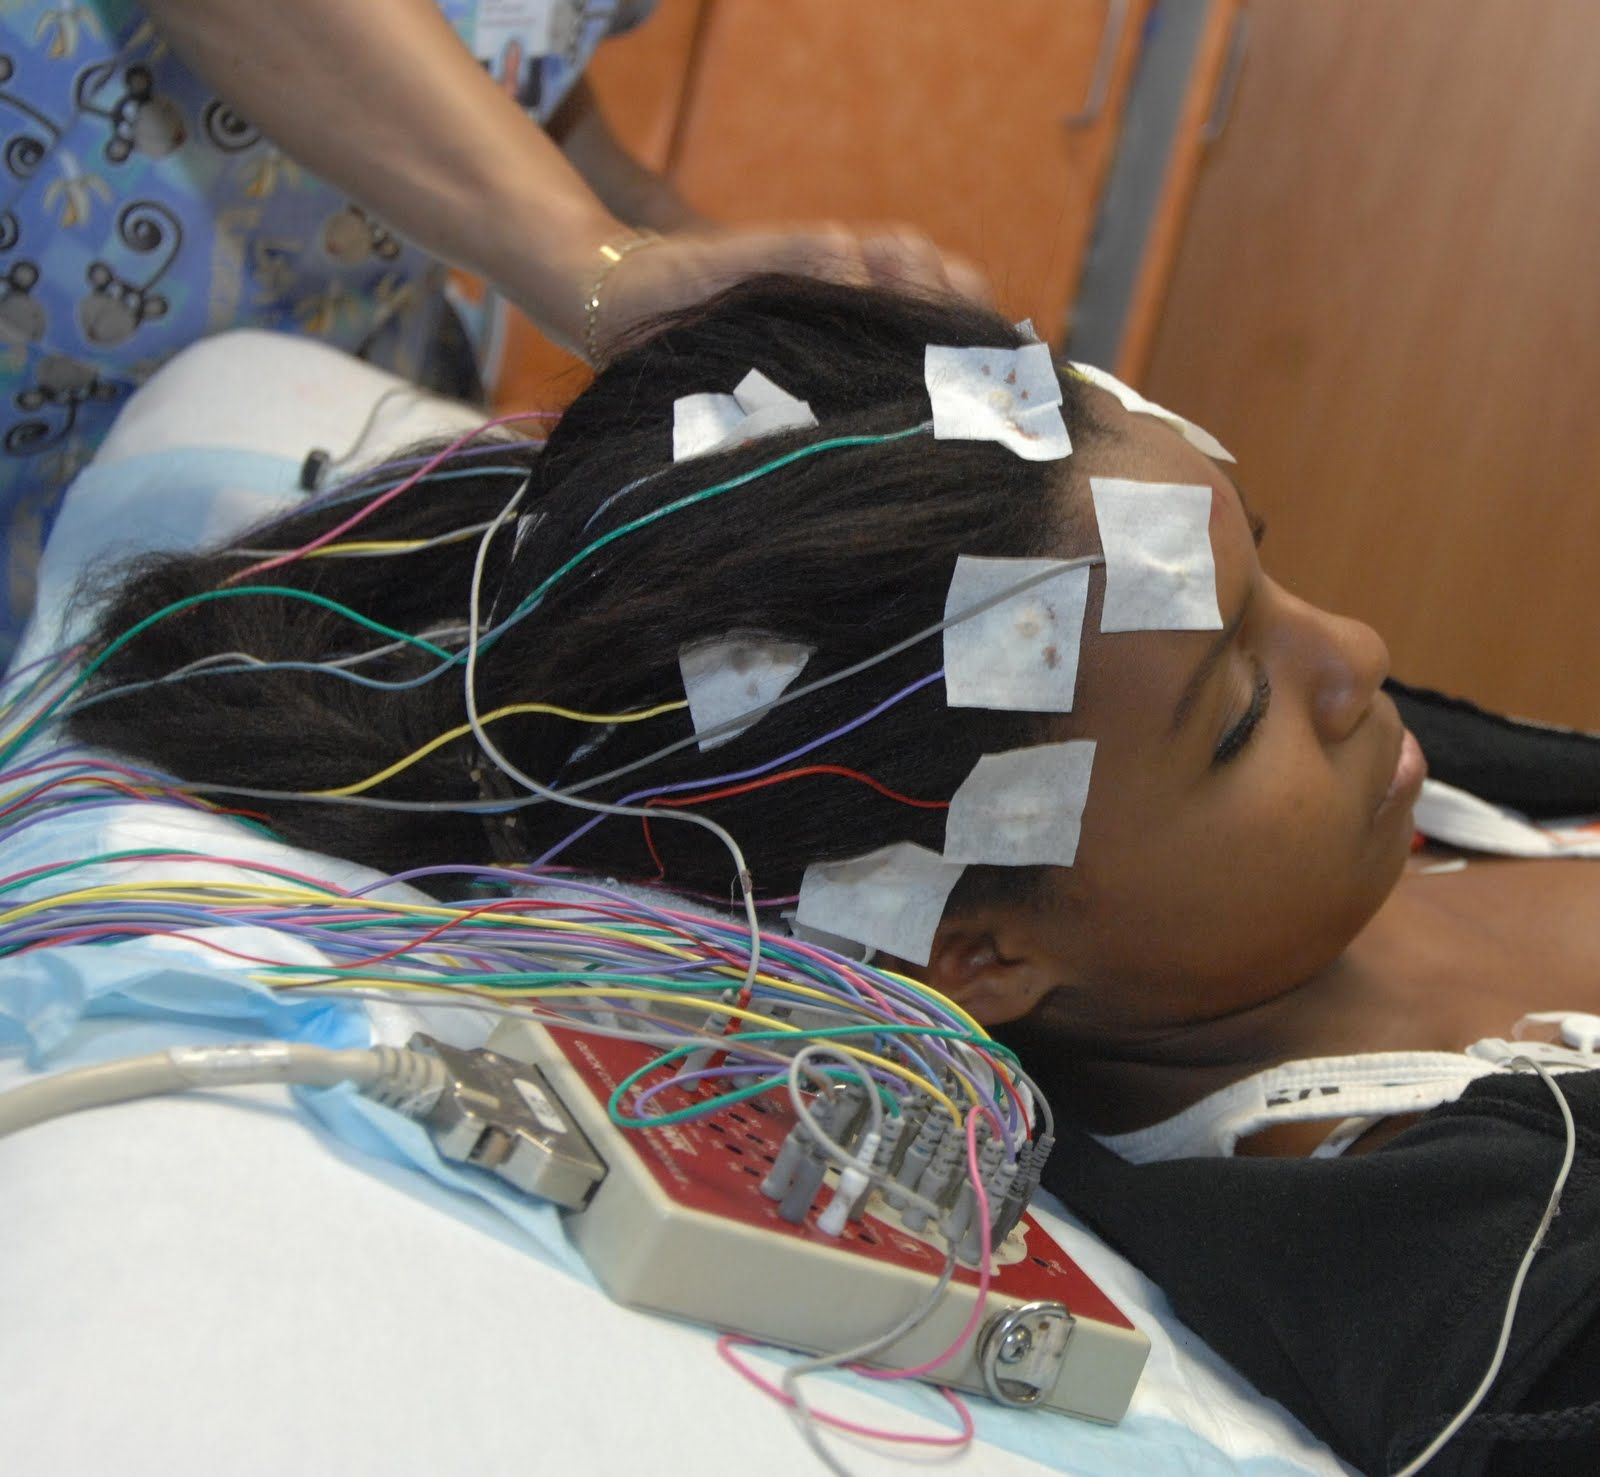 Pin by rebecca lee on working in eeg health matters